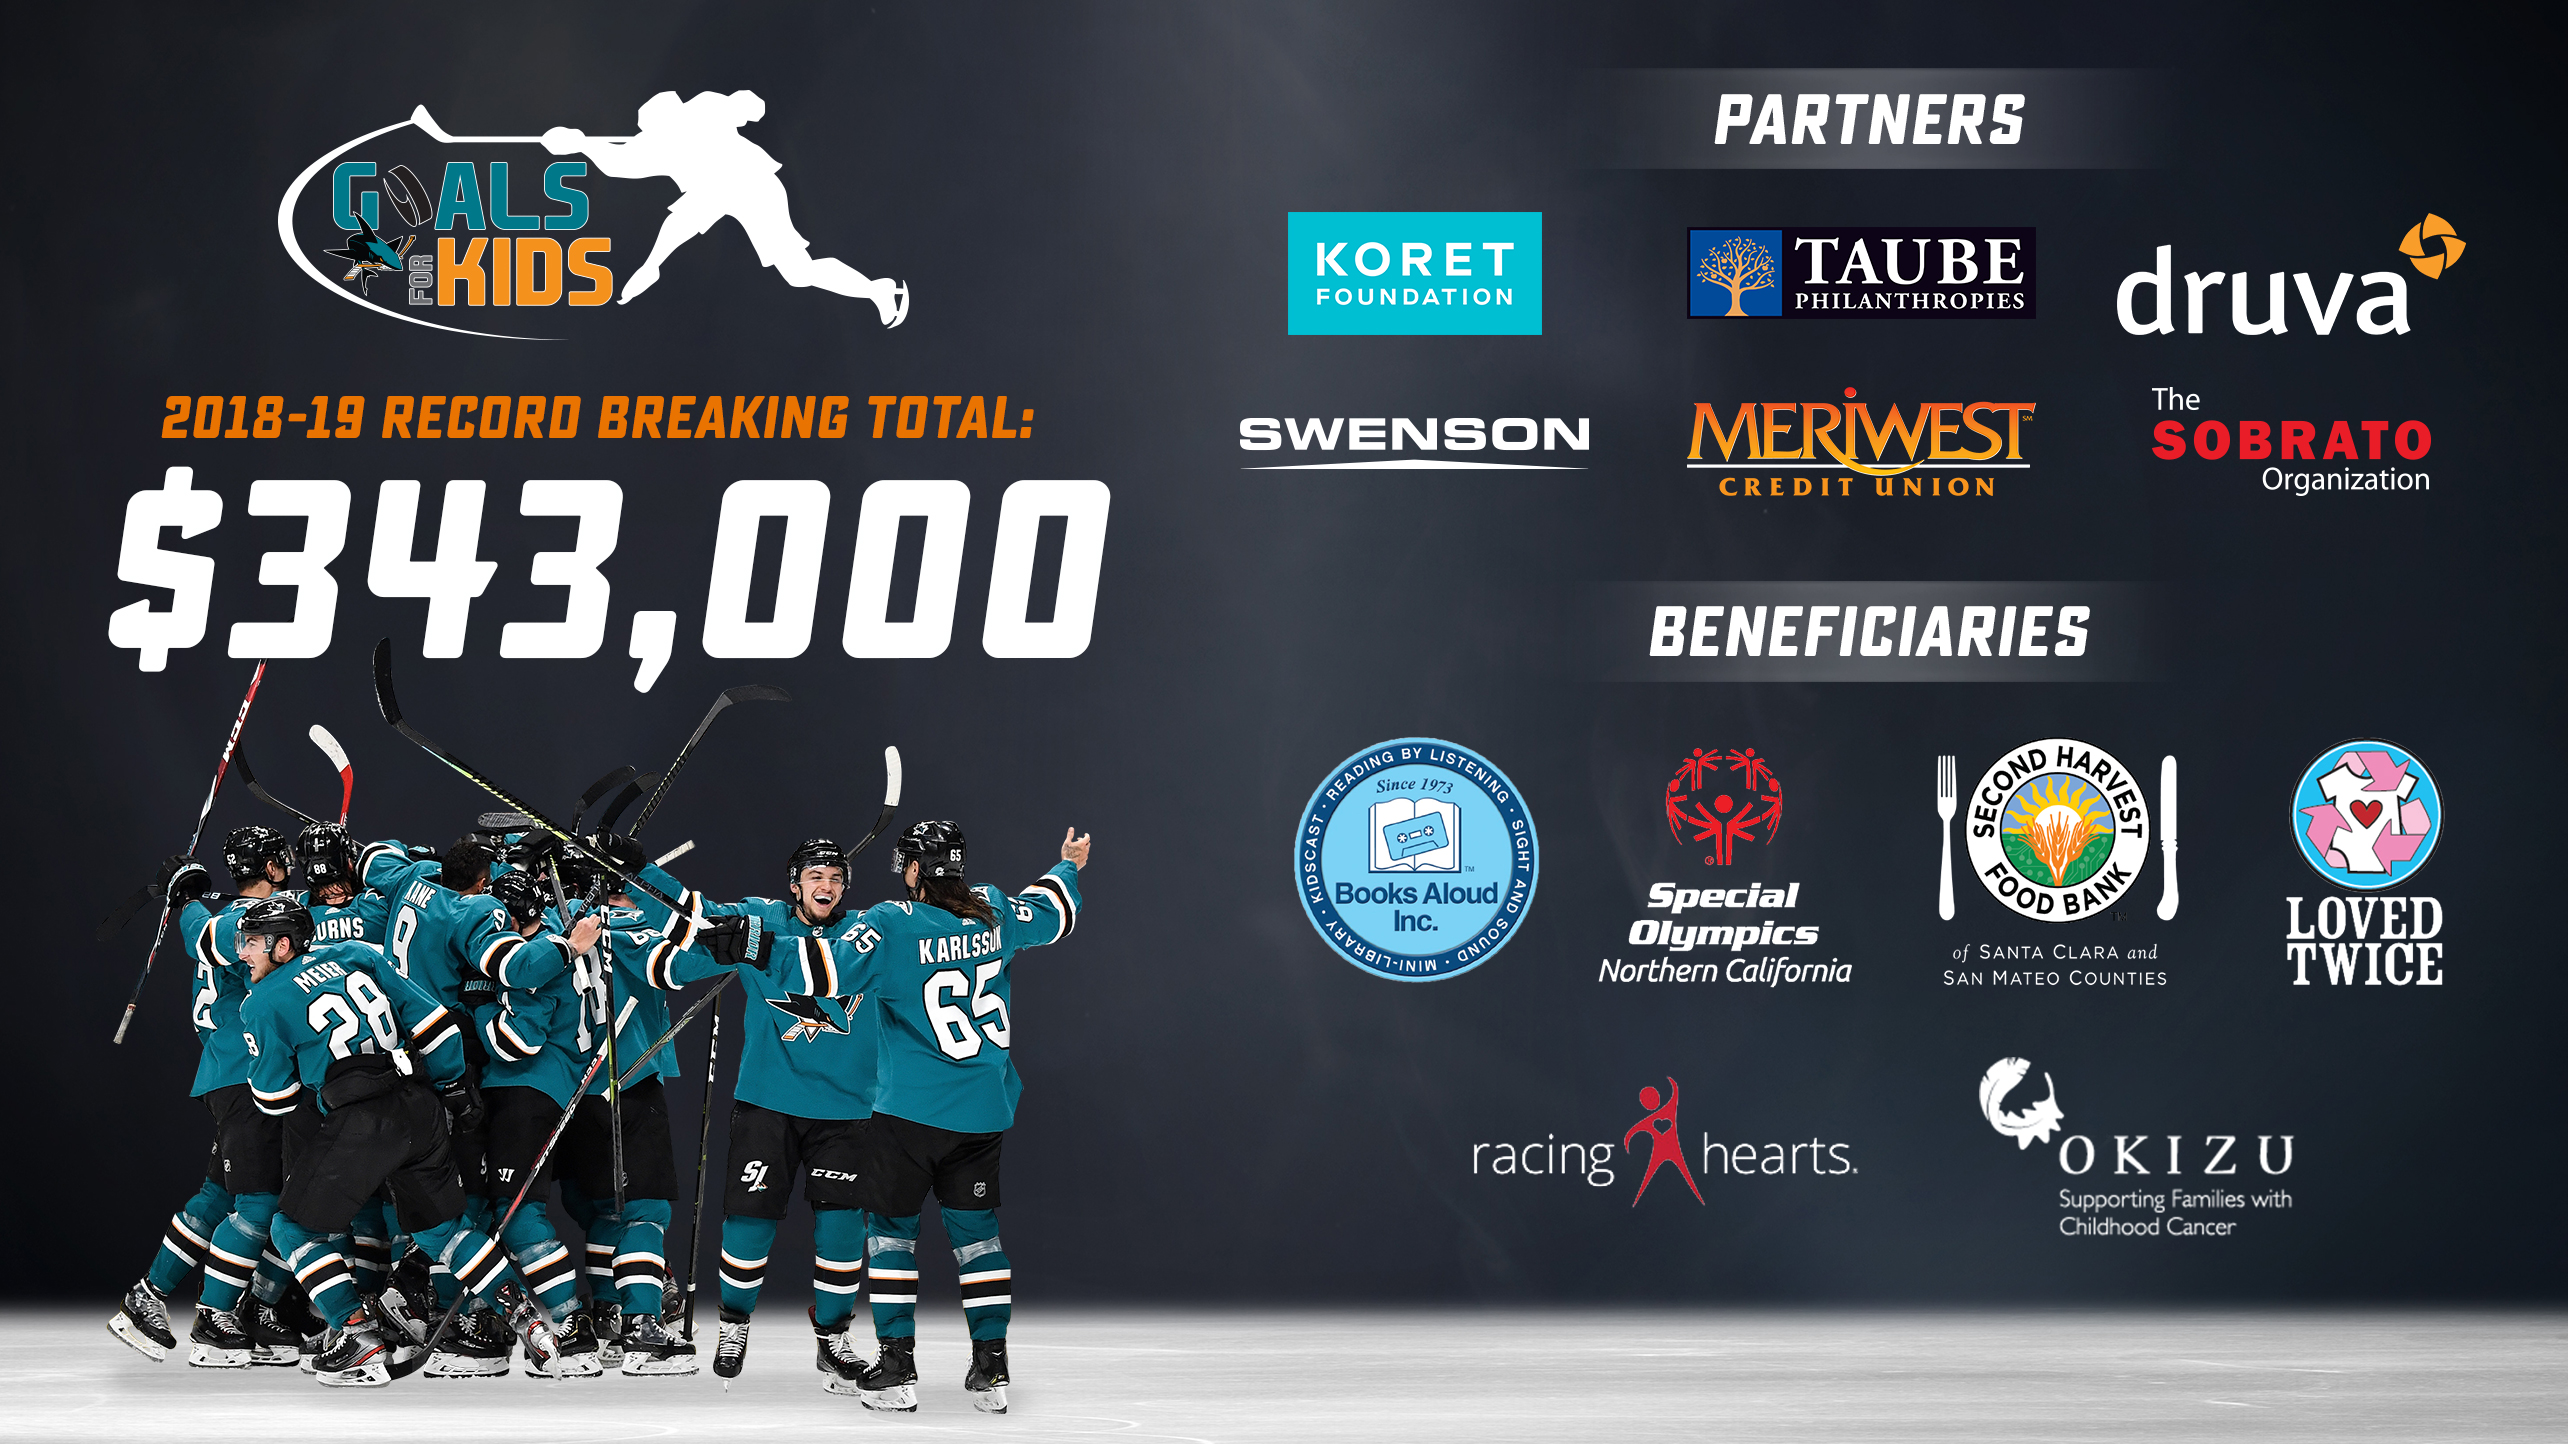 Golas For Kids End of Season Infographic